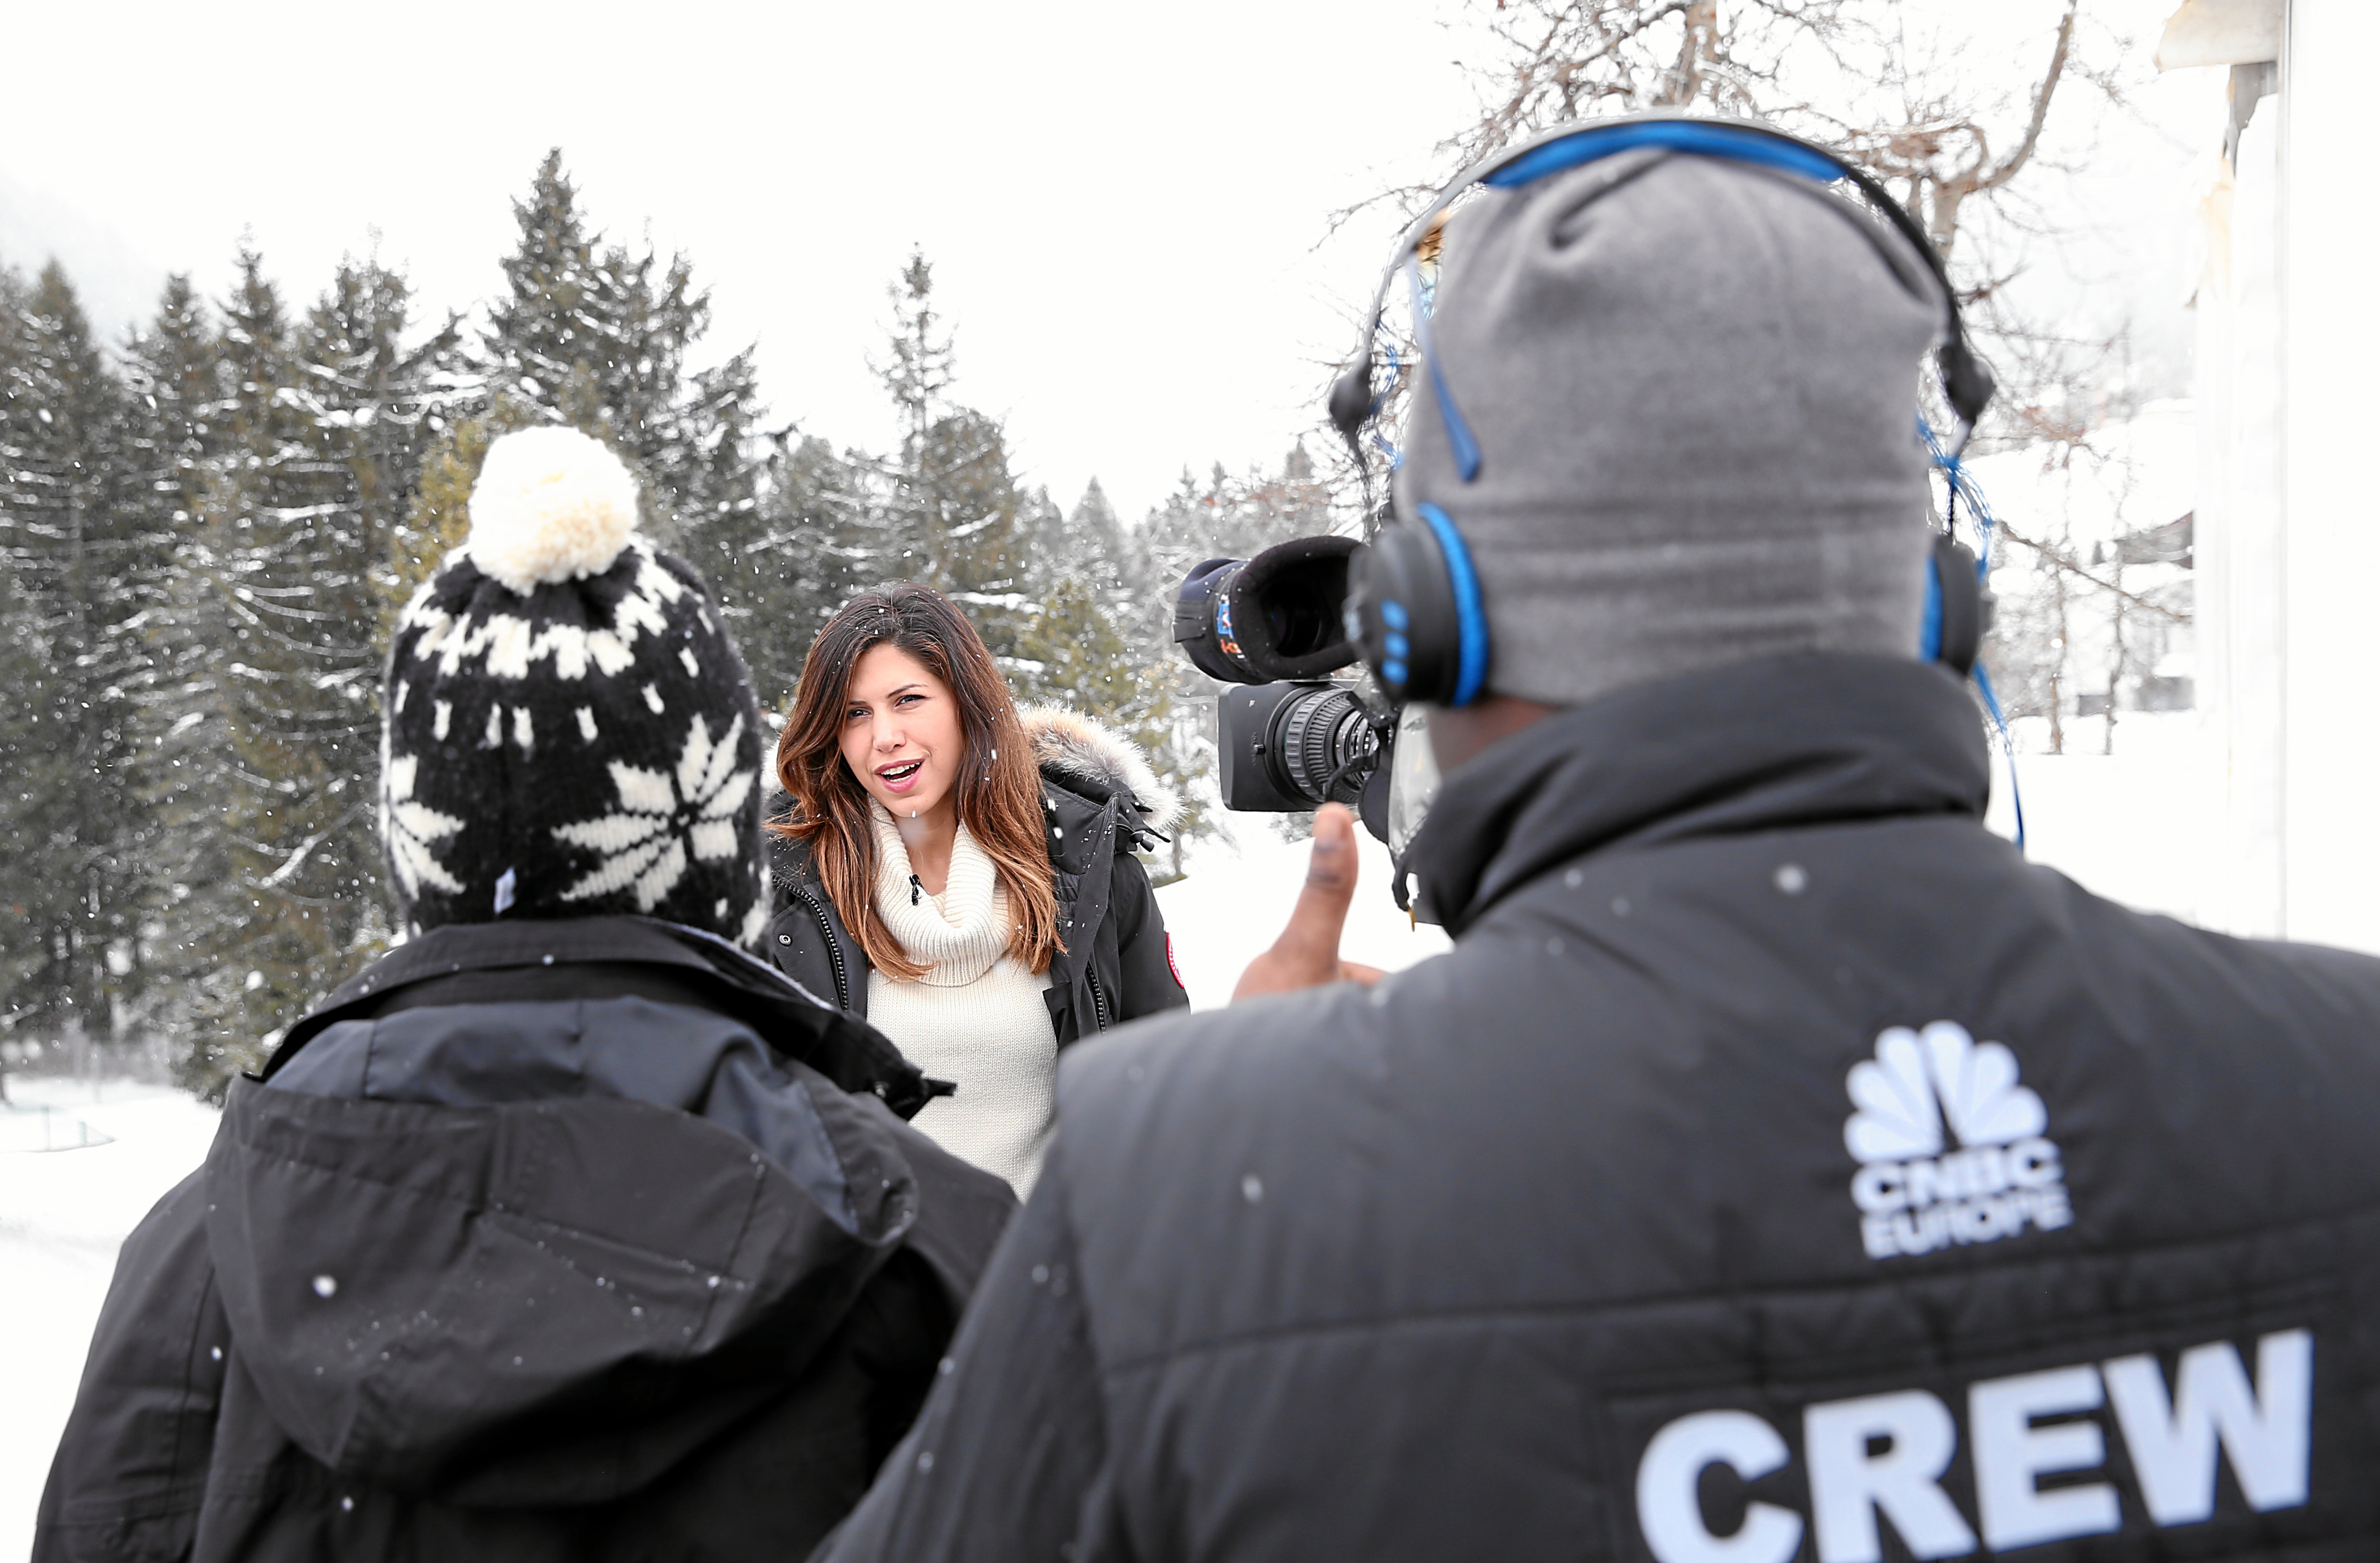 A CNBC television team is reporting from the Annual Meeting 2014 of the World Economic Forum outside the congress centre in Davos, January 21, 2014.